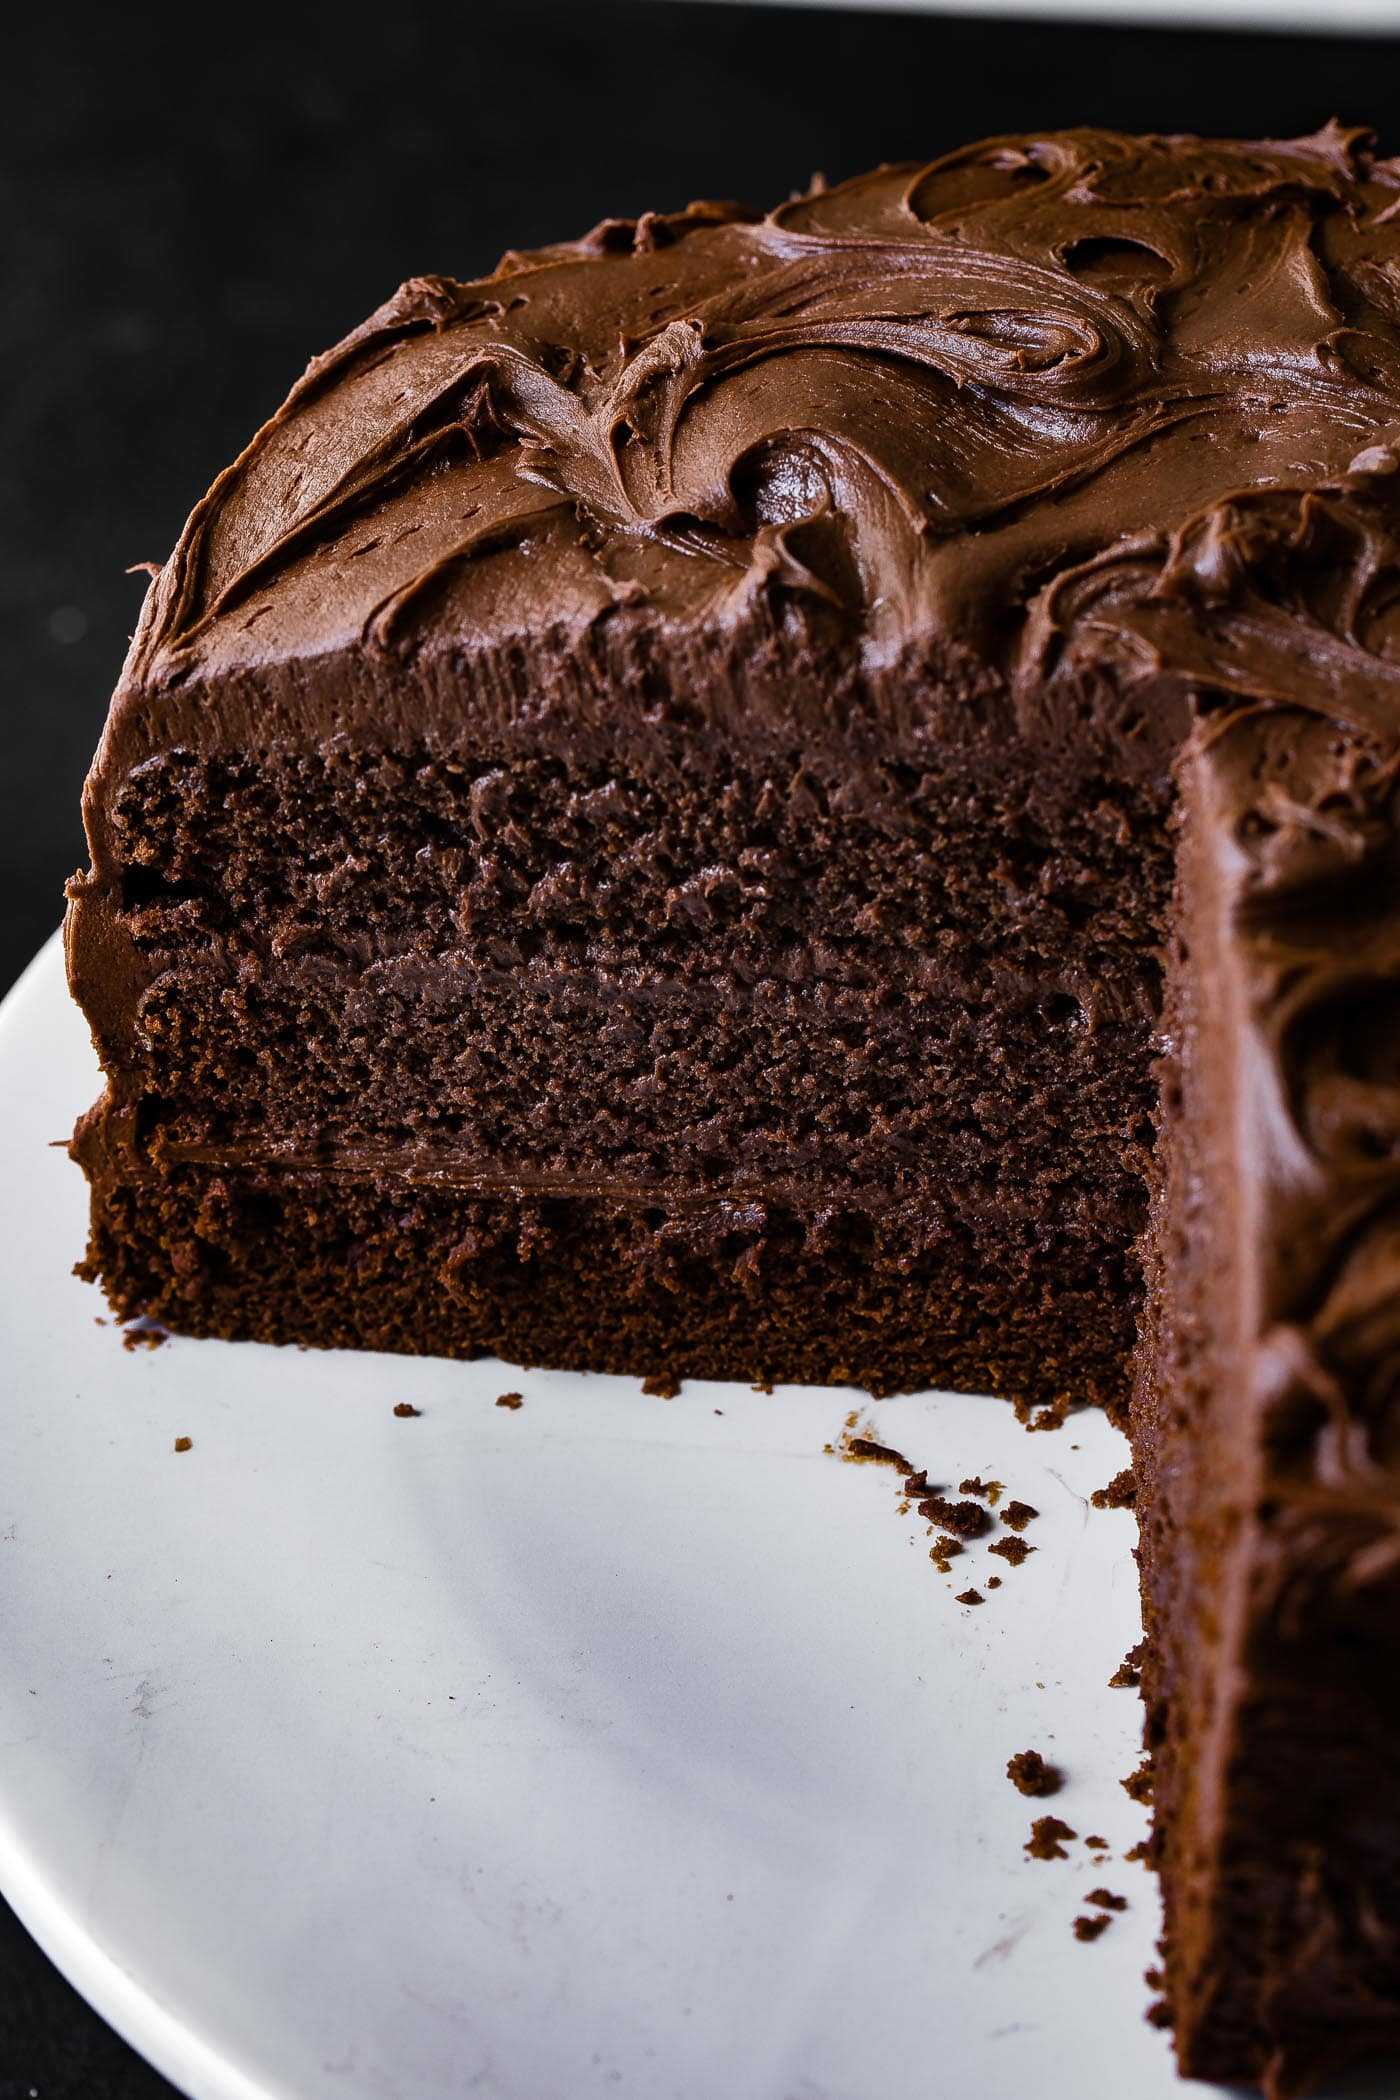 A chocolate layer cake with chocolate frosting. Several pieces have been cut from the cake exposing the moist, chocolaty inside. Each layer is frosted with the same creamy chocolate frosting that frosts the whole cake.